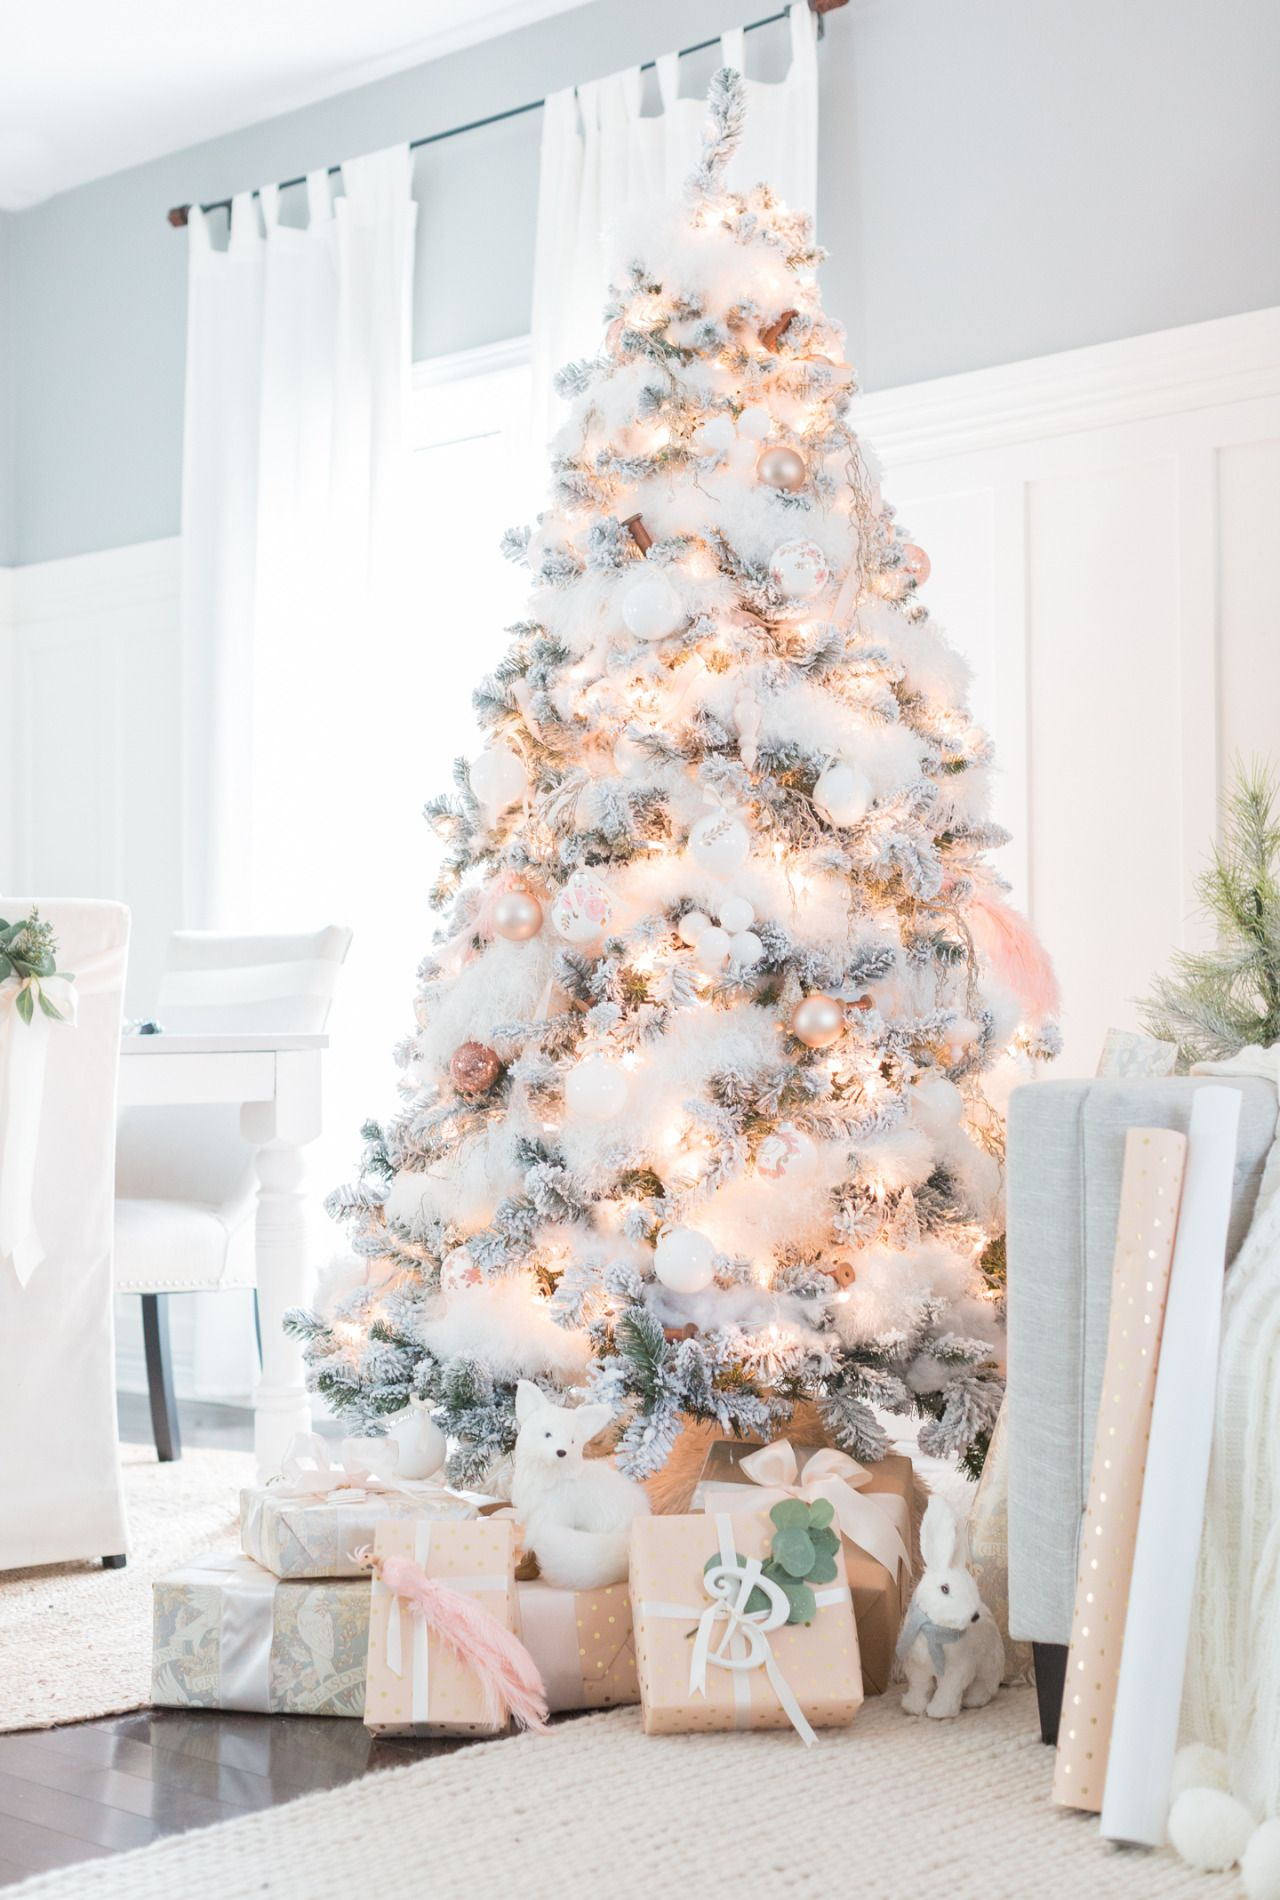 Snowy Christmas tree | Christmas | Pinterest | Snowy christmas tree ...